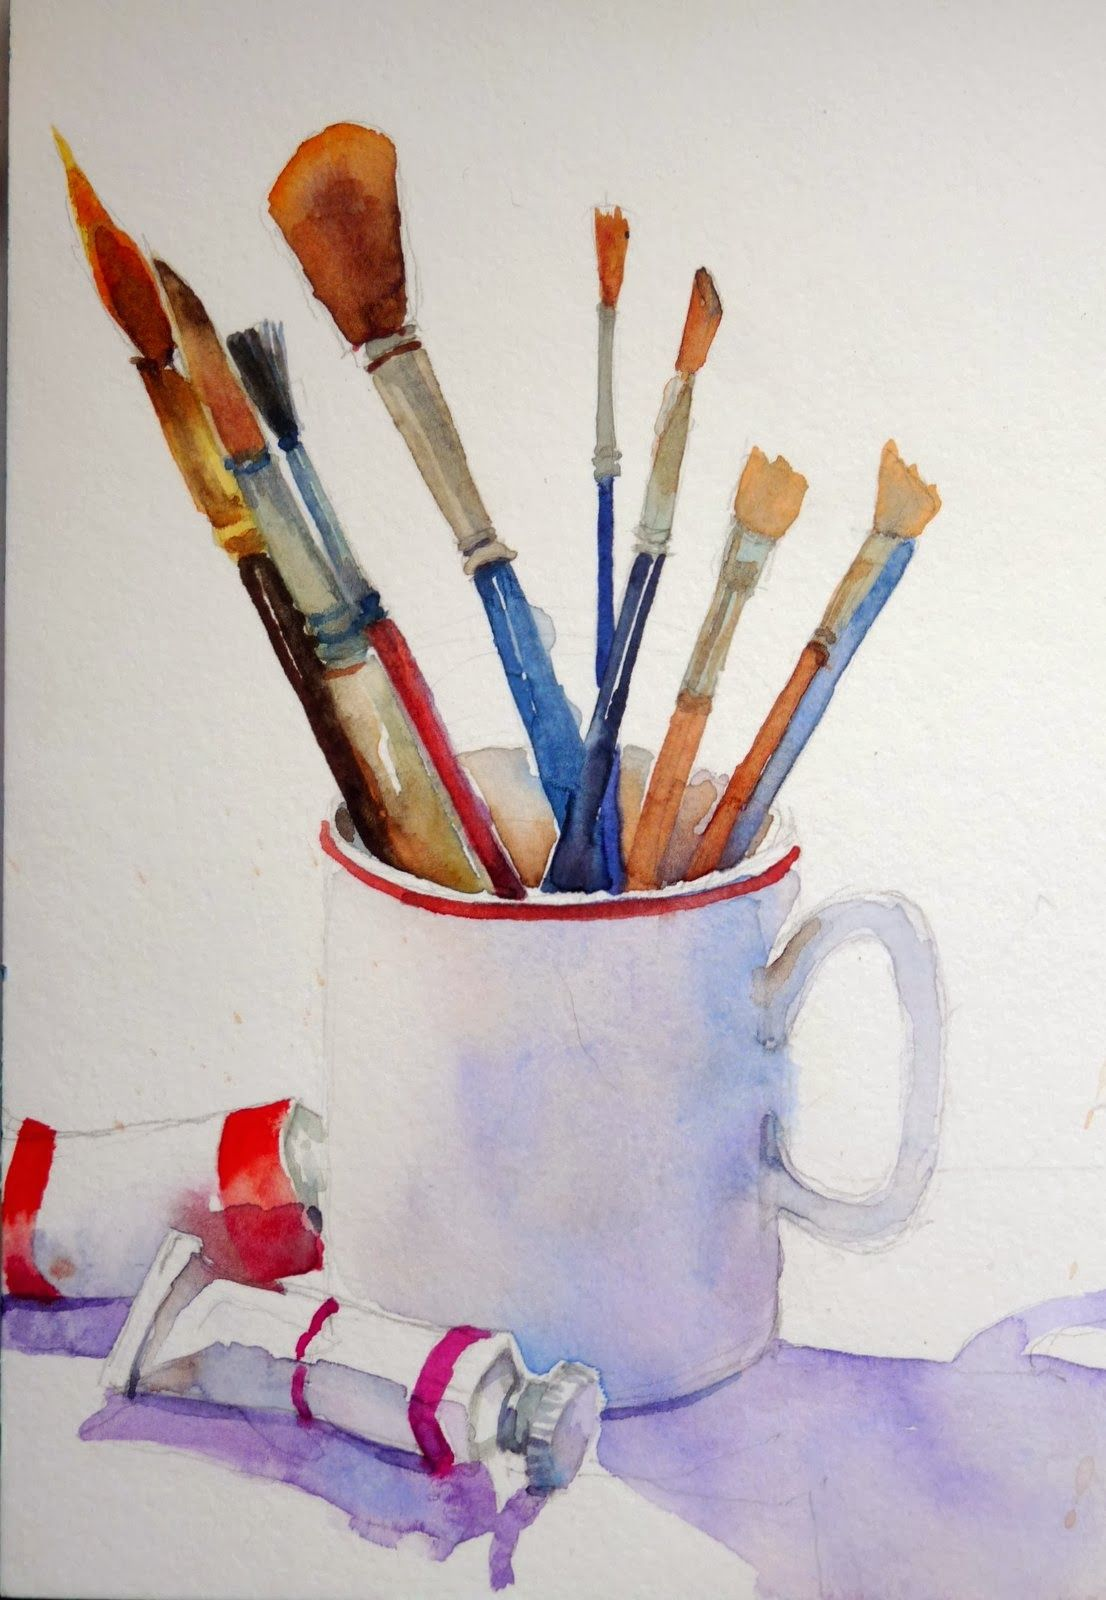 watercolor brushes in coffee cup Watercolor brushes, Art